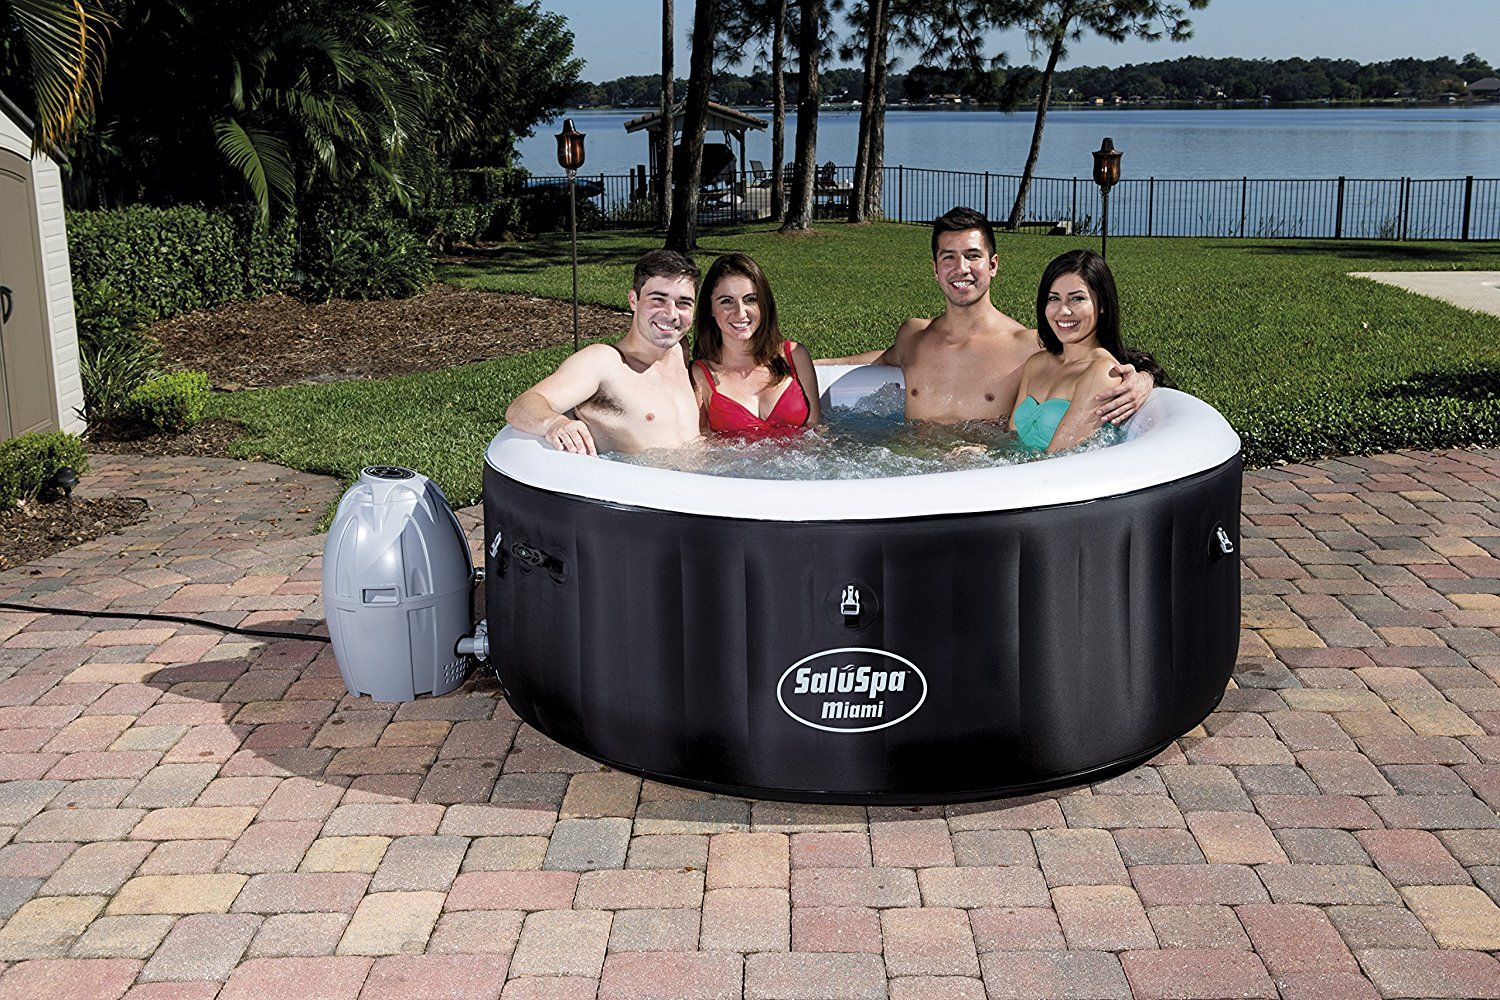 It Has Been Used Through The Centuries For Those Who Wish To Enjoy The Comfort Of Hot Water Caressin Inflatable Hot Tub Reviews Hot Tub Reviews Hot Tub Outdoor